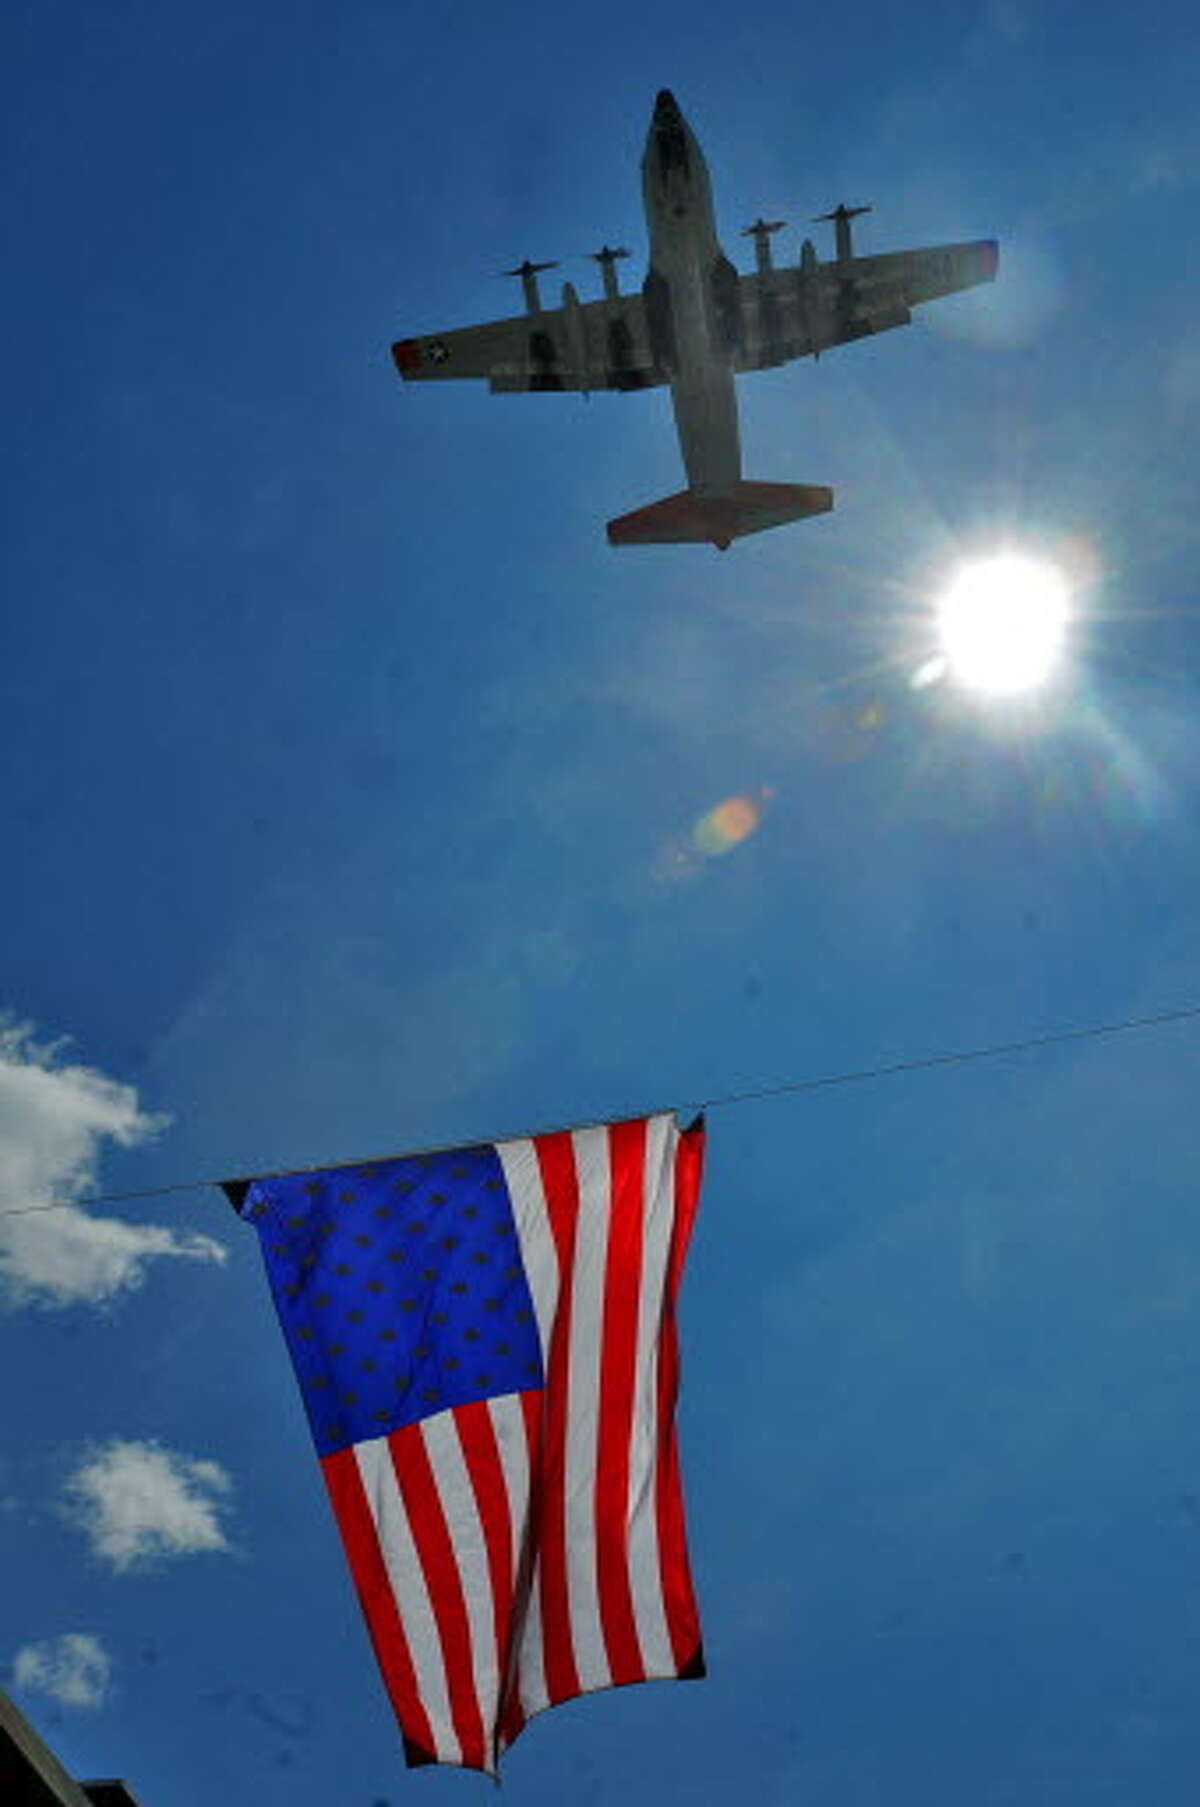 A C-130H from the 109th Airlift Wing from the Stratton Air National Guard Base in Glenville flies over Fourth Street in Troy, NY as part of the annual Flag Day Parade, on Sunday June 14, 2009. (Times Union archive)